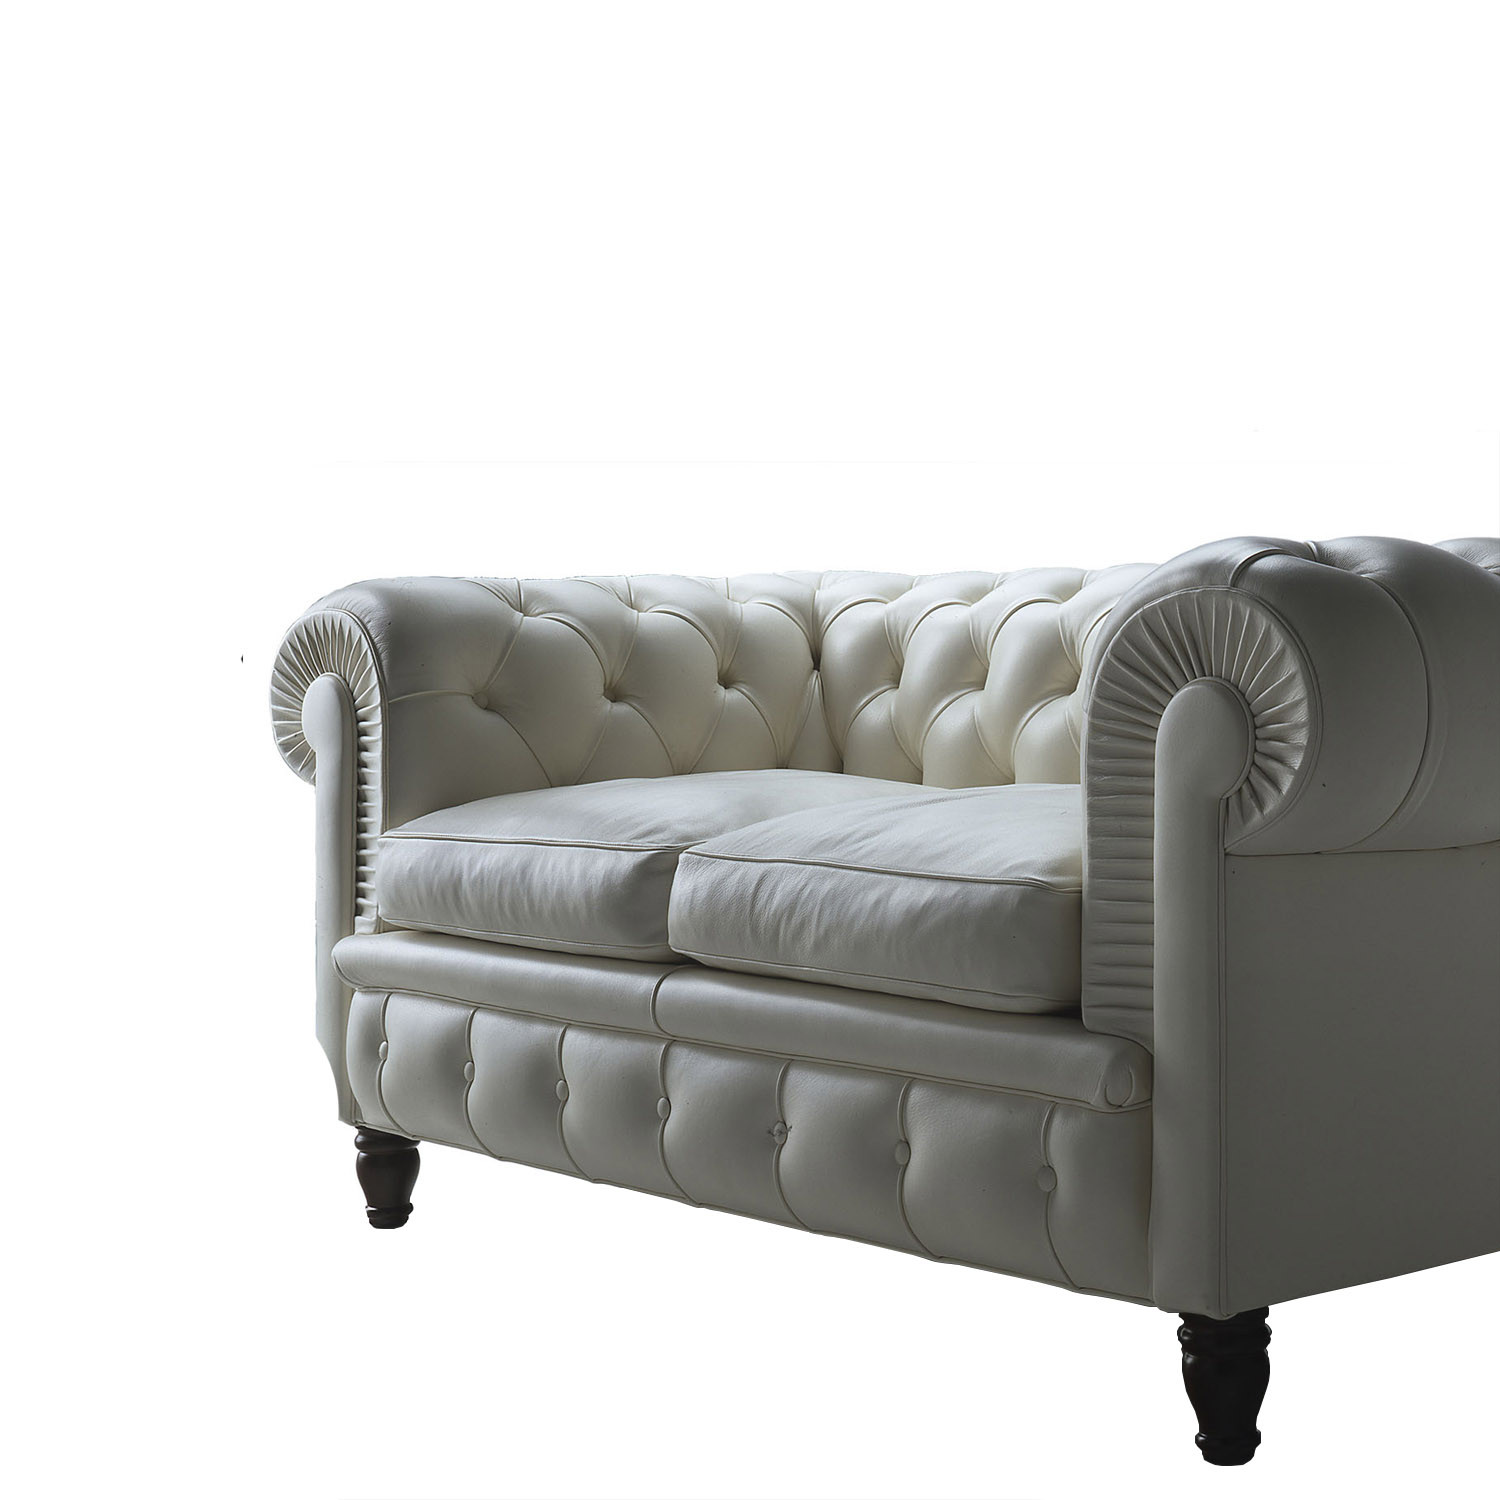 5 Seater Sofa Price